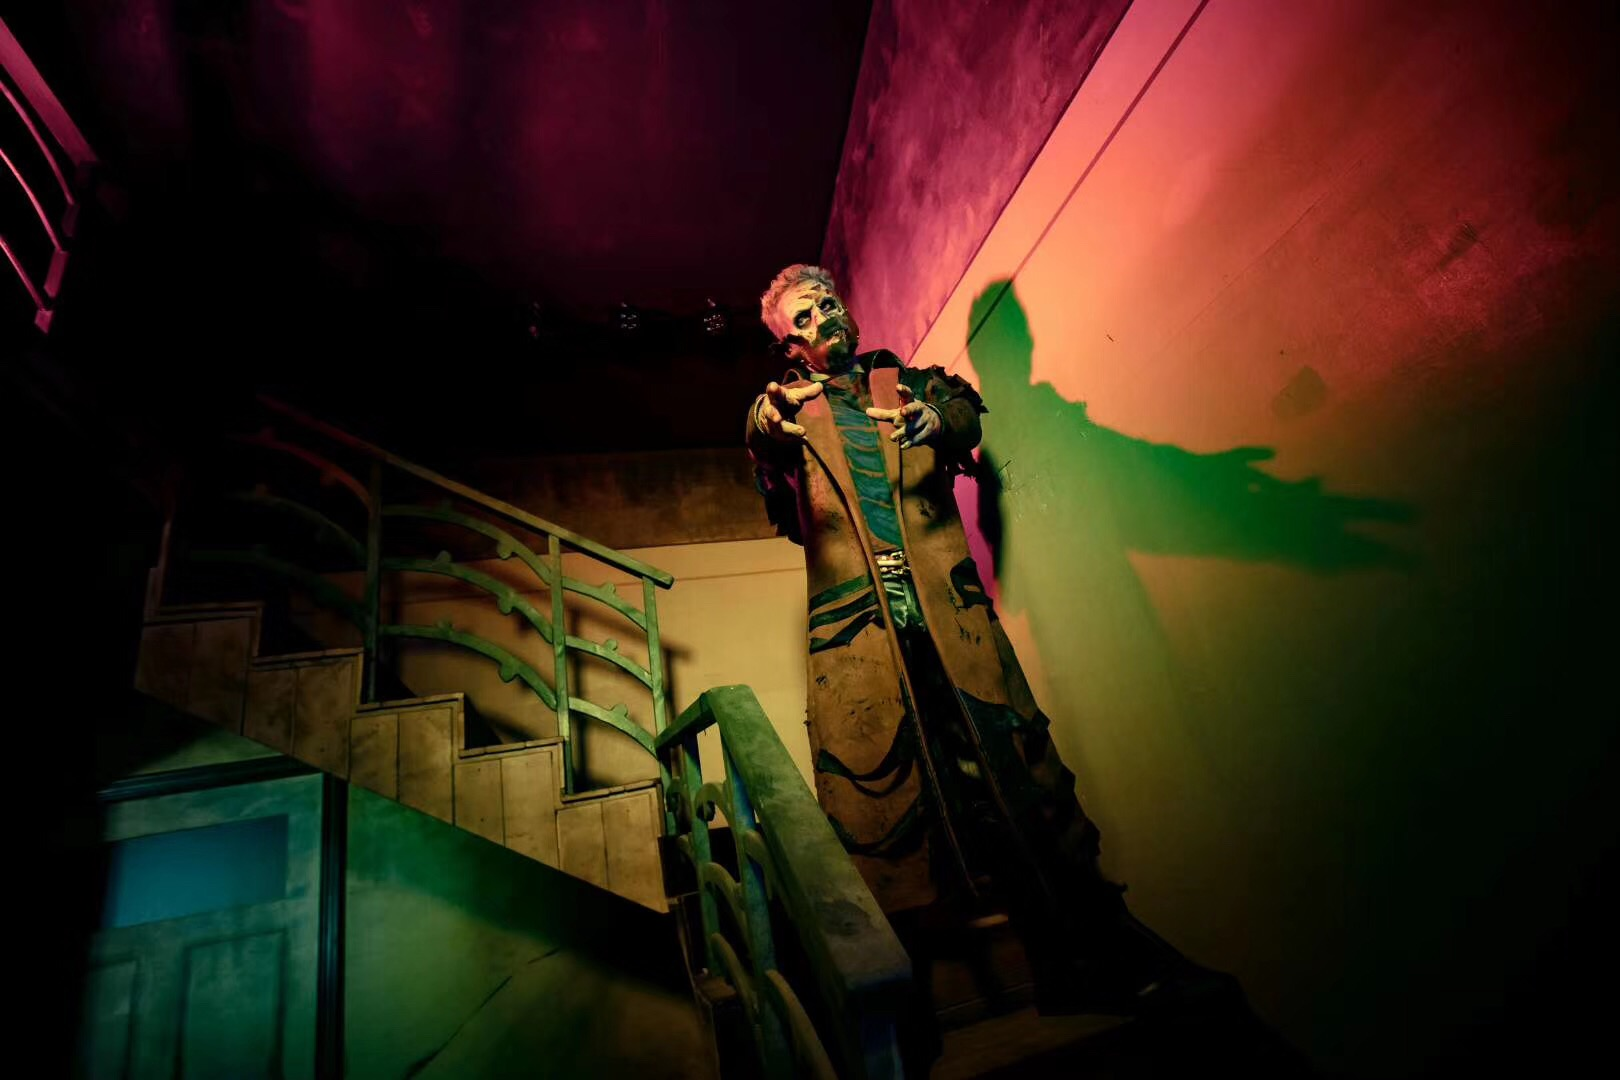 The scare actor at the stairs at the Cursed House Haunted House at Chimelong in 2019